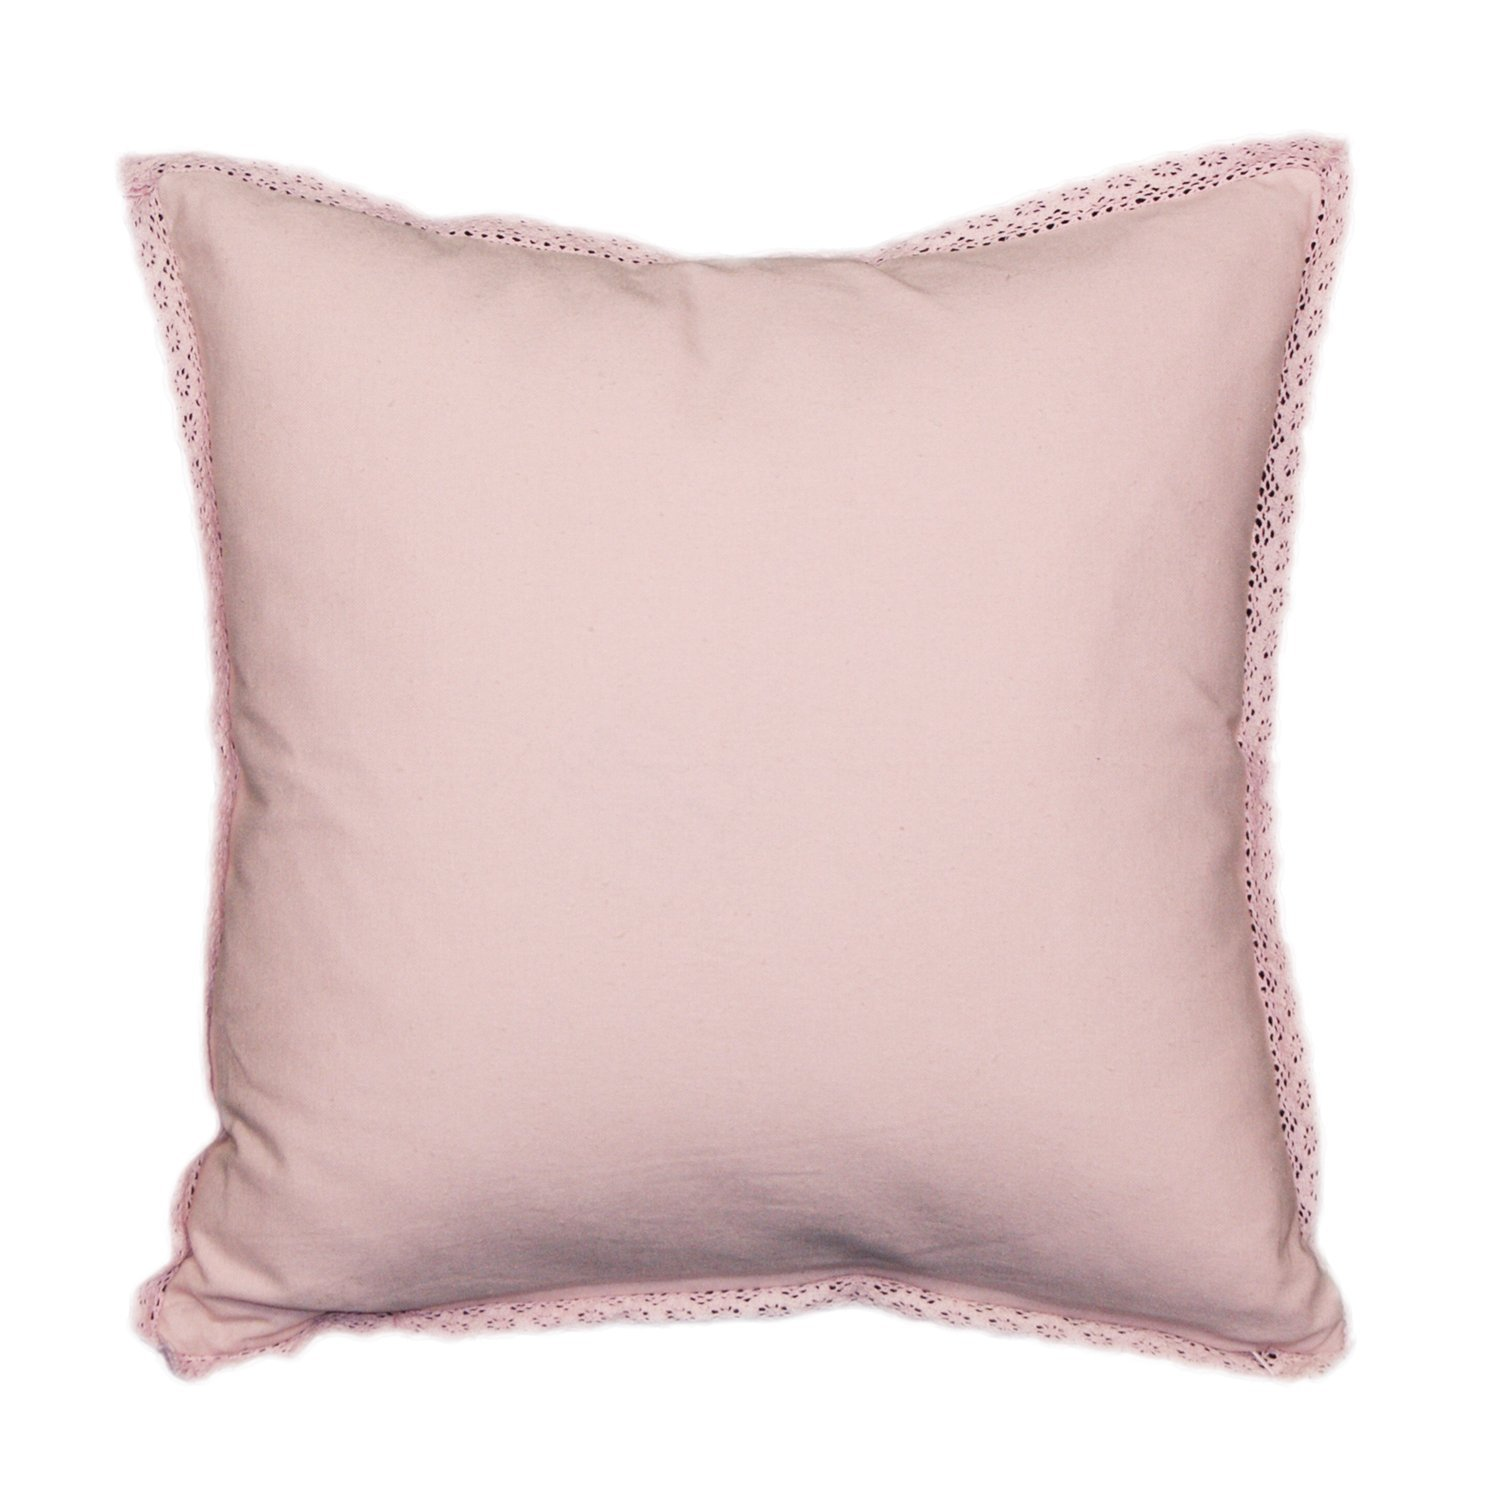 Amazon.com: Urban Loft by Westex Crochet Pink Cushion 18x18 ...